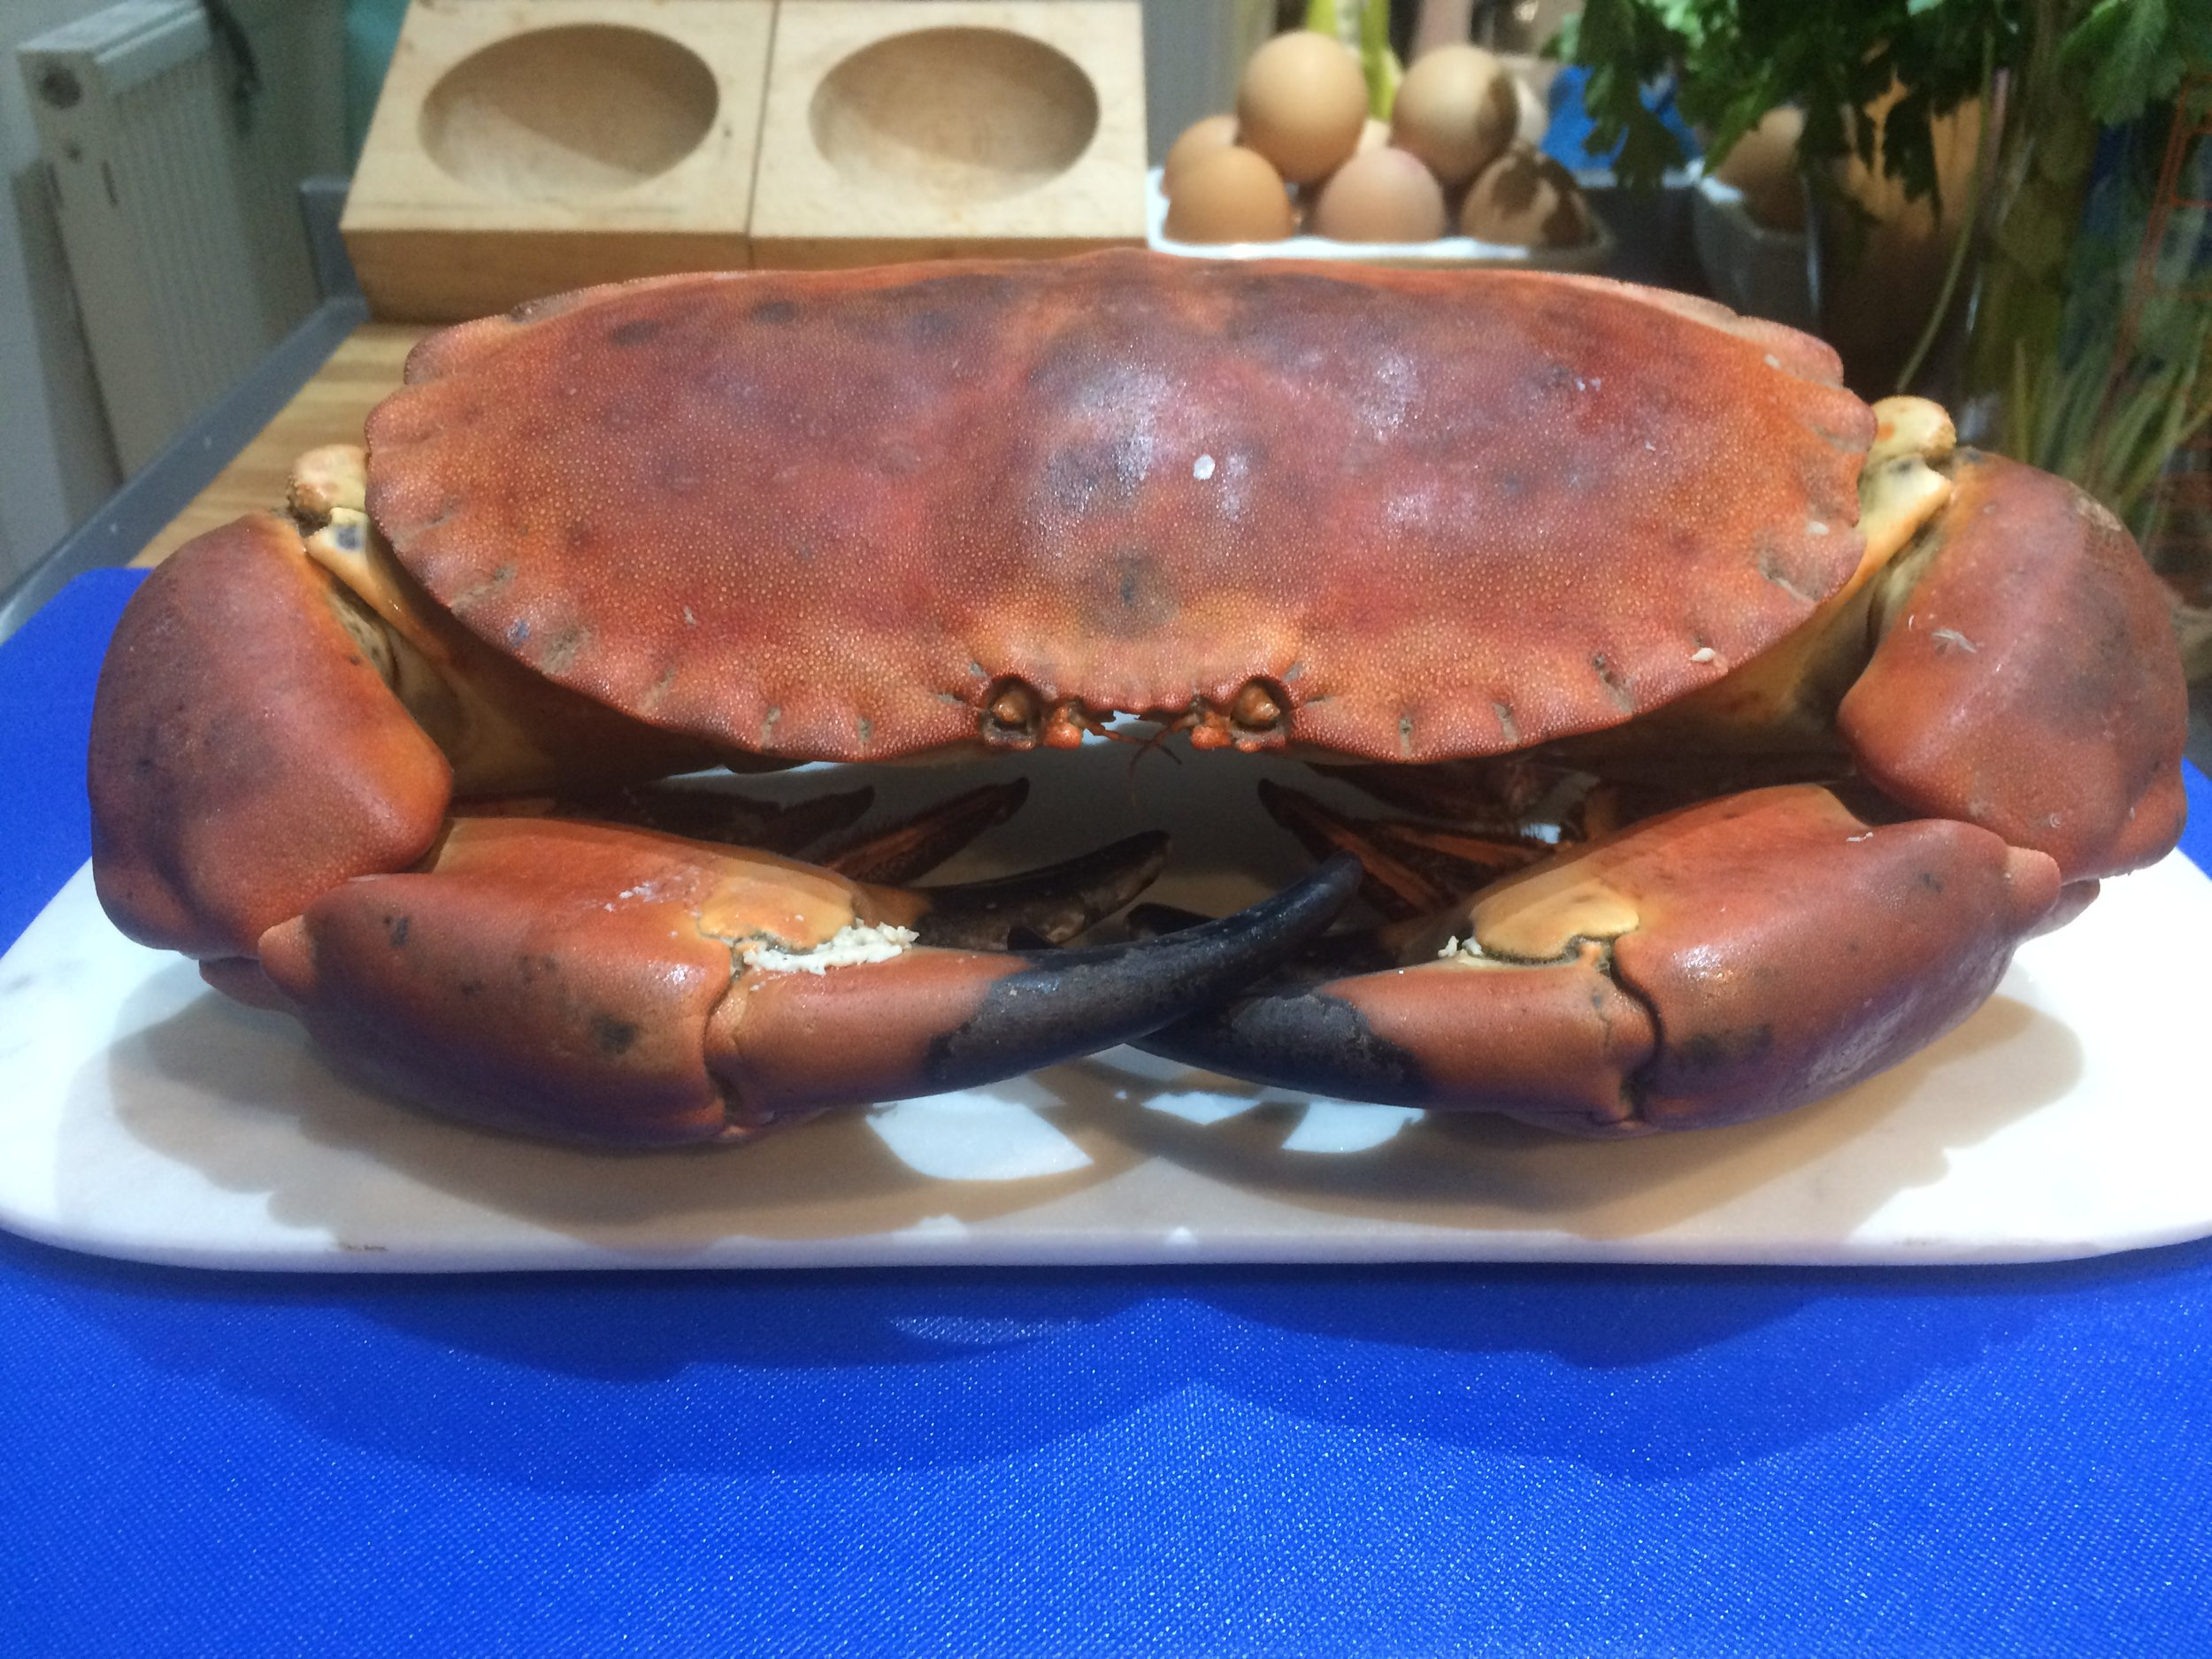 Large British Crab: ask the fishmonger to prepare the crab, which means to remove the unpleasant inedible parts.